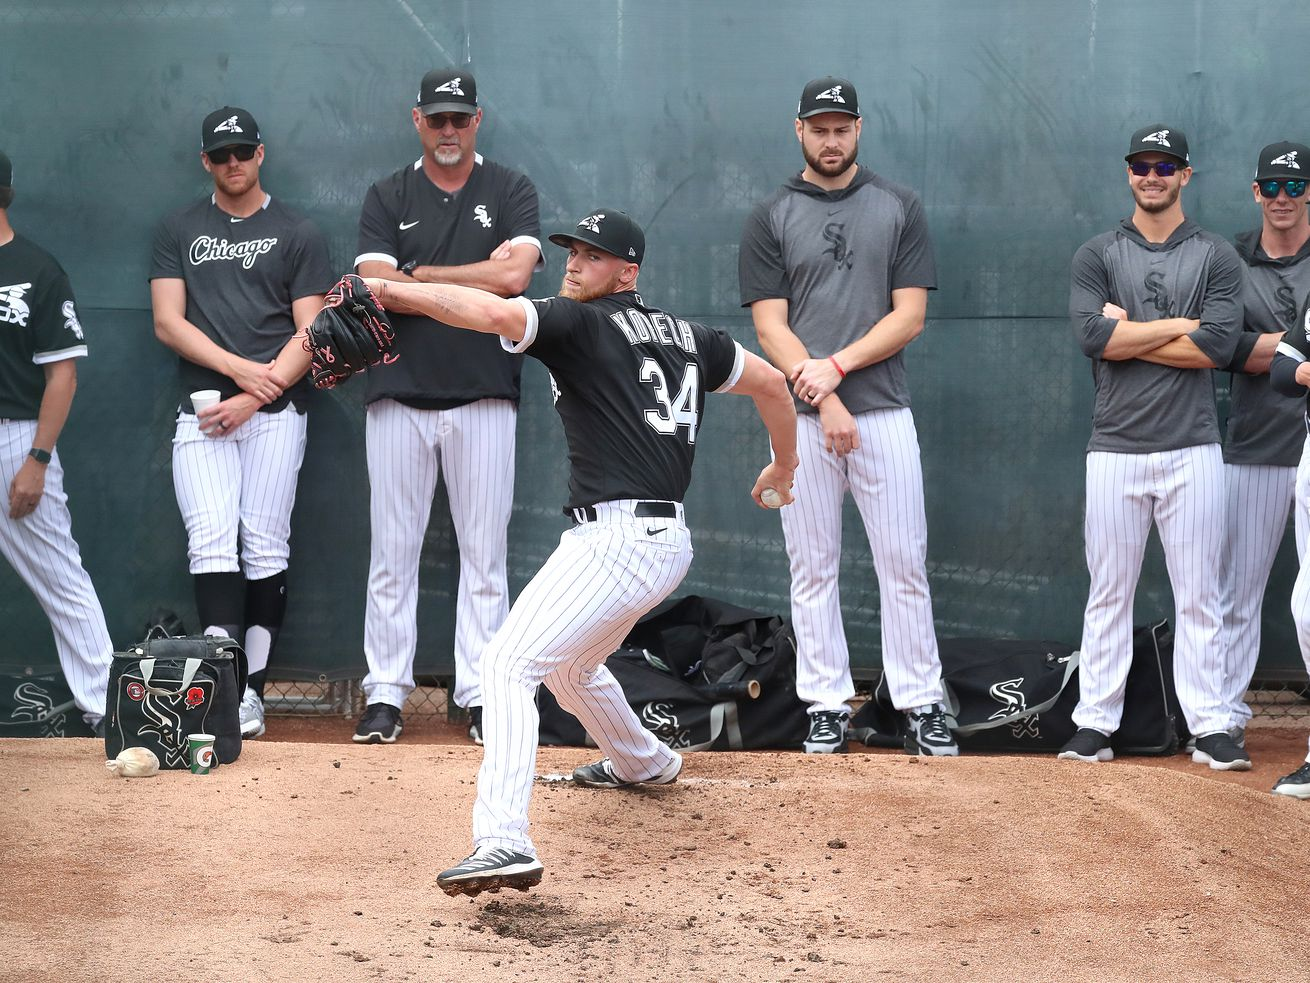 White Sox teammates support for Michael Kopech remains strong